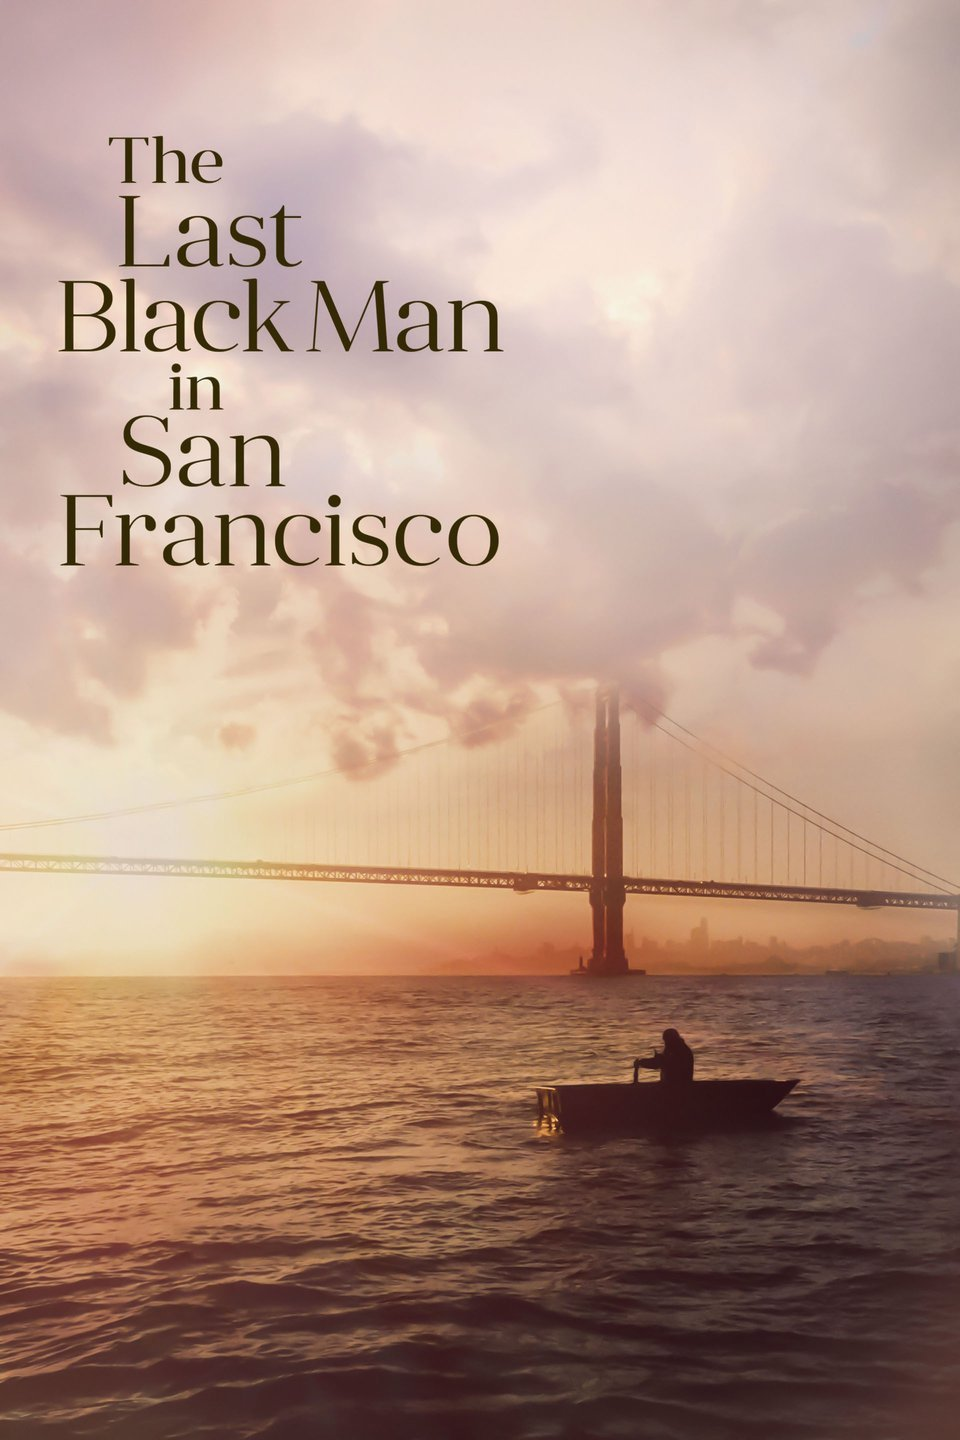 — THE LAST BLACK MAN IN SAN FRANCISCO   Jimmie and his best friend Mont try to reclaim the house built by Jimmie's grandfather, launching them on a poignant odyssey that connects them to their past, even as it tests their friendship and sense of belonging in the place they call home.